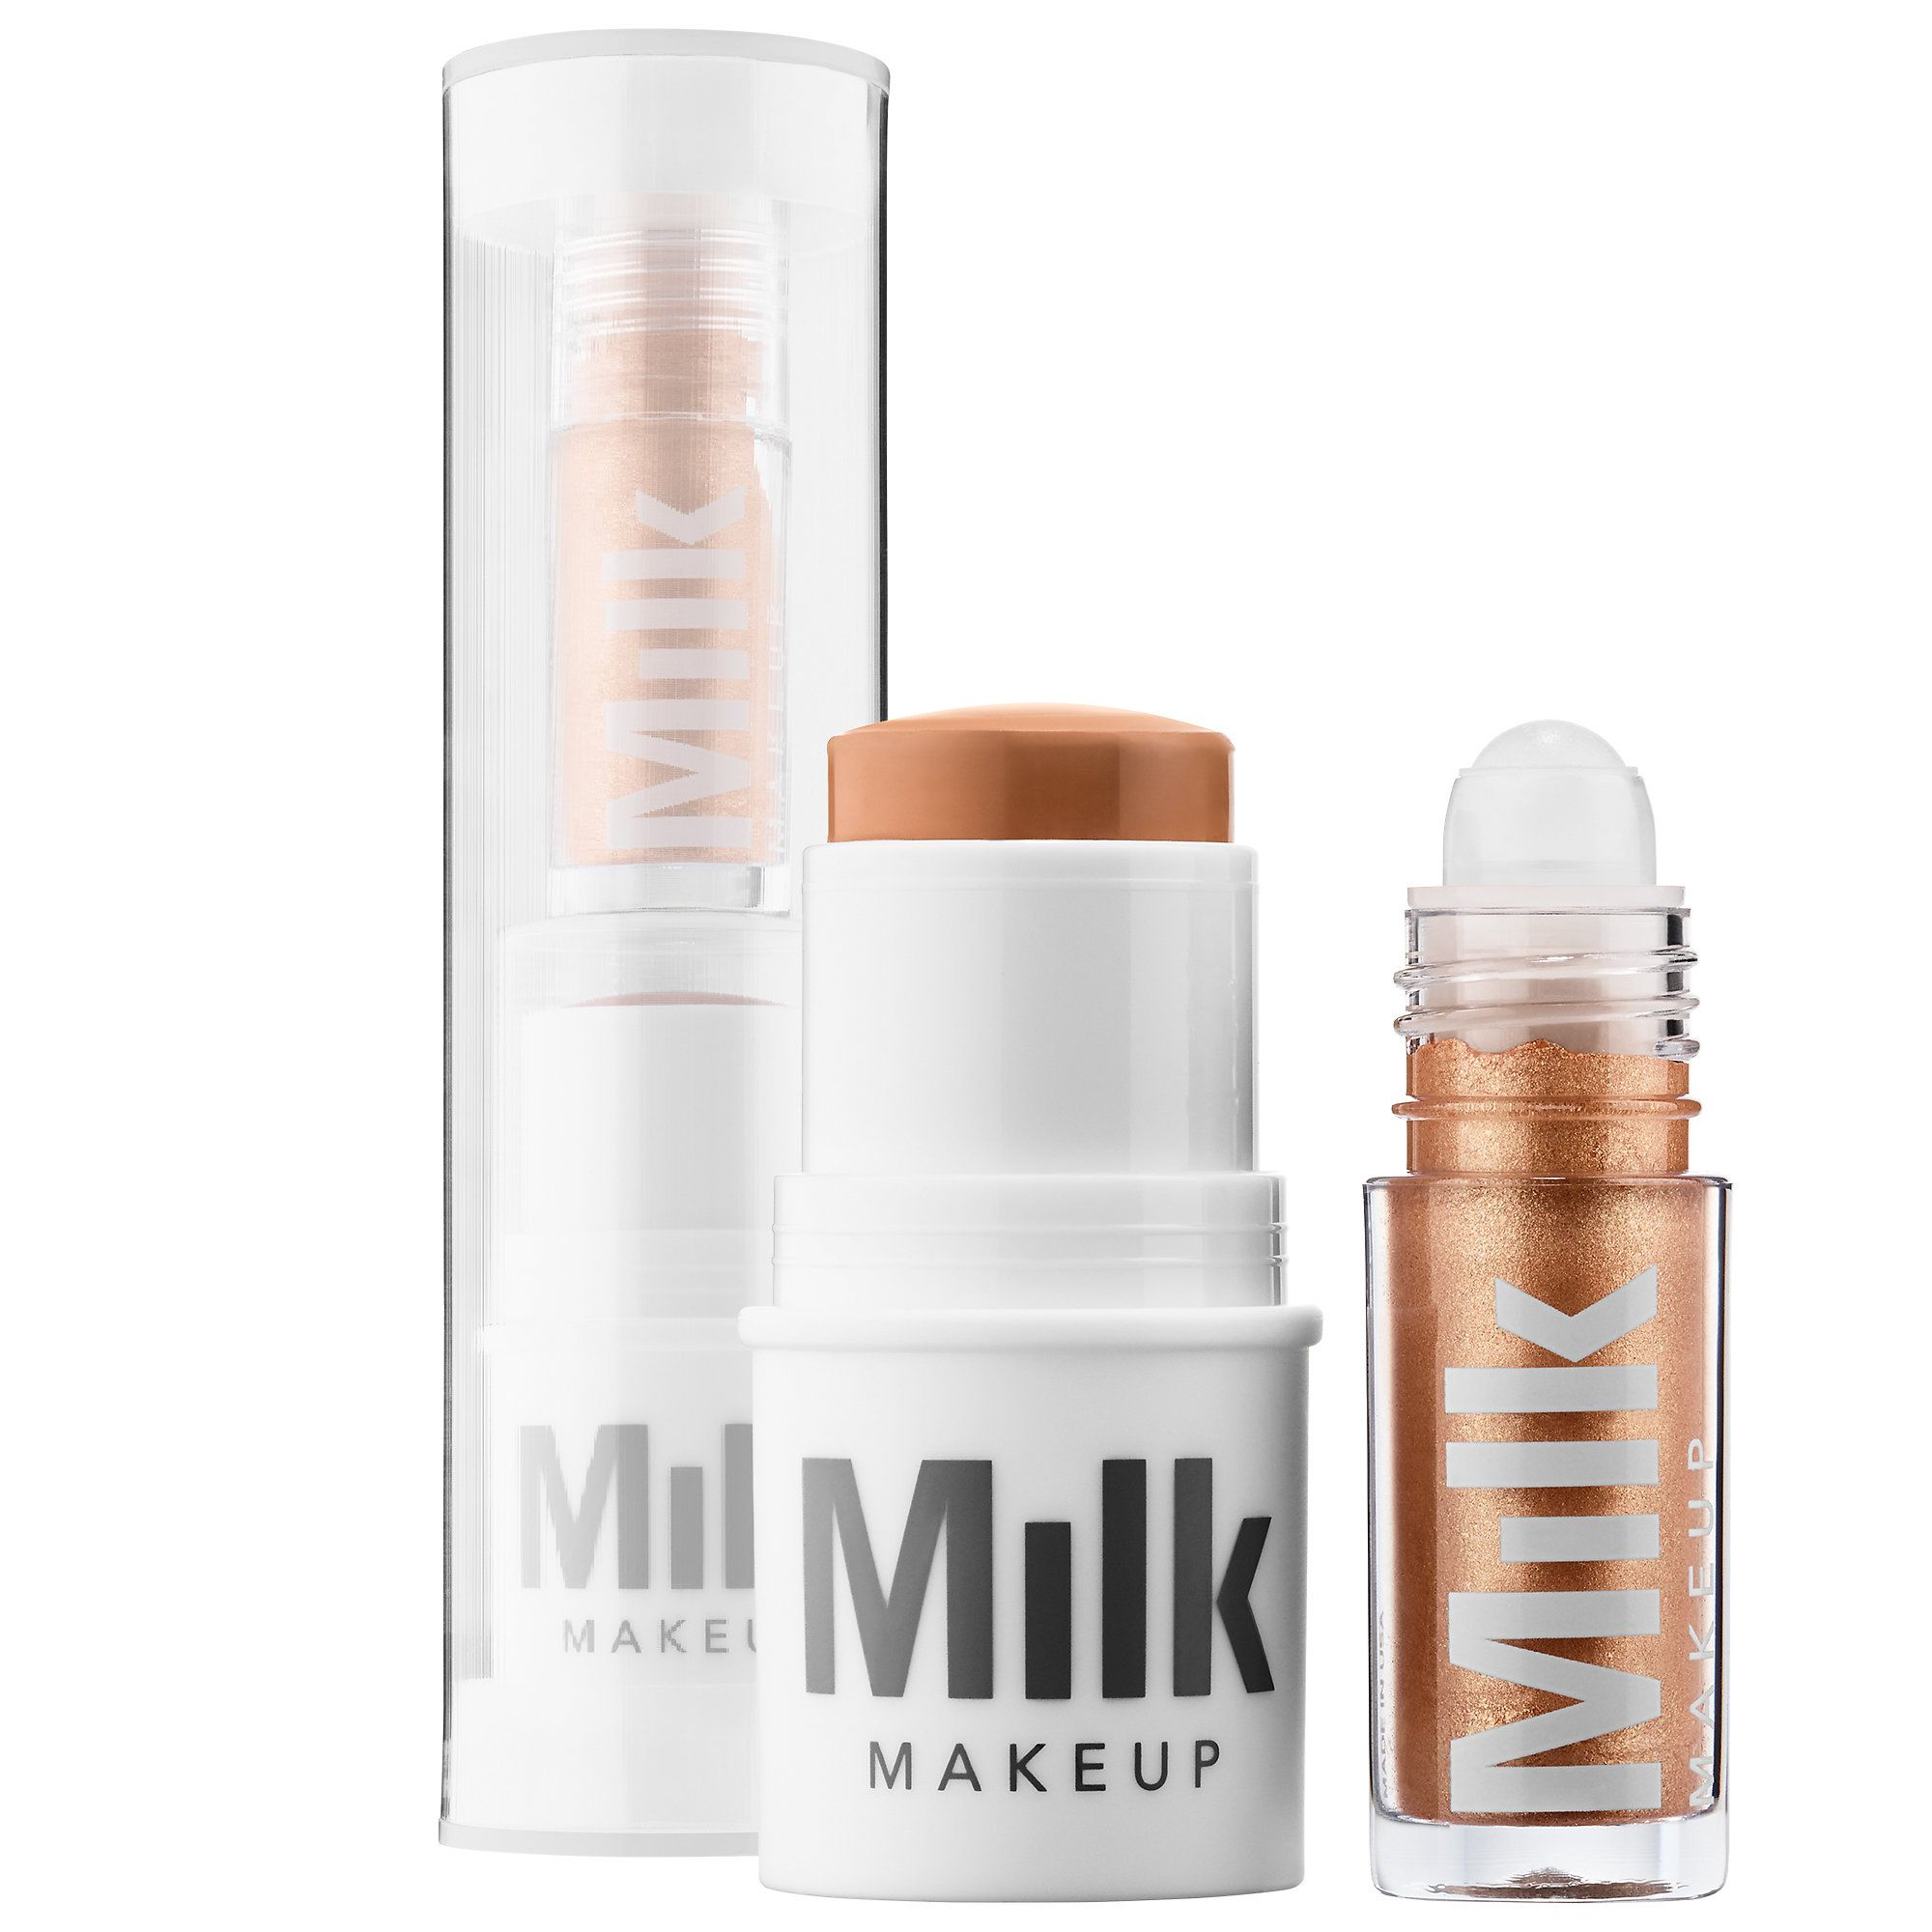 Shop Milk Makeup's Matte Bronzer + Liquid Strobe Set at